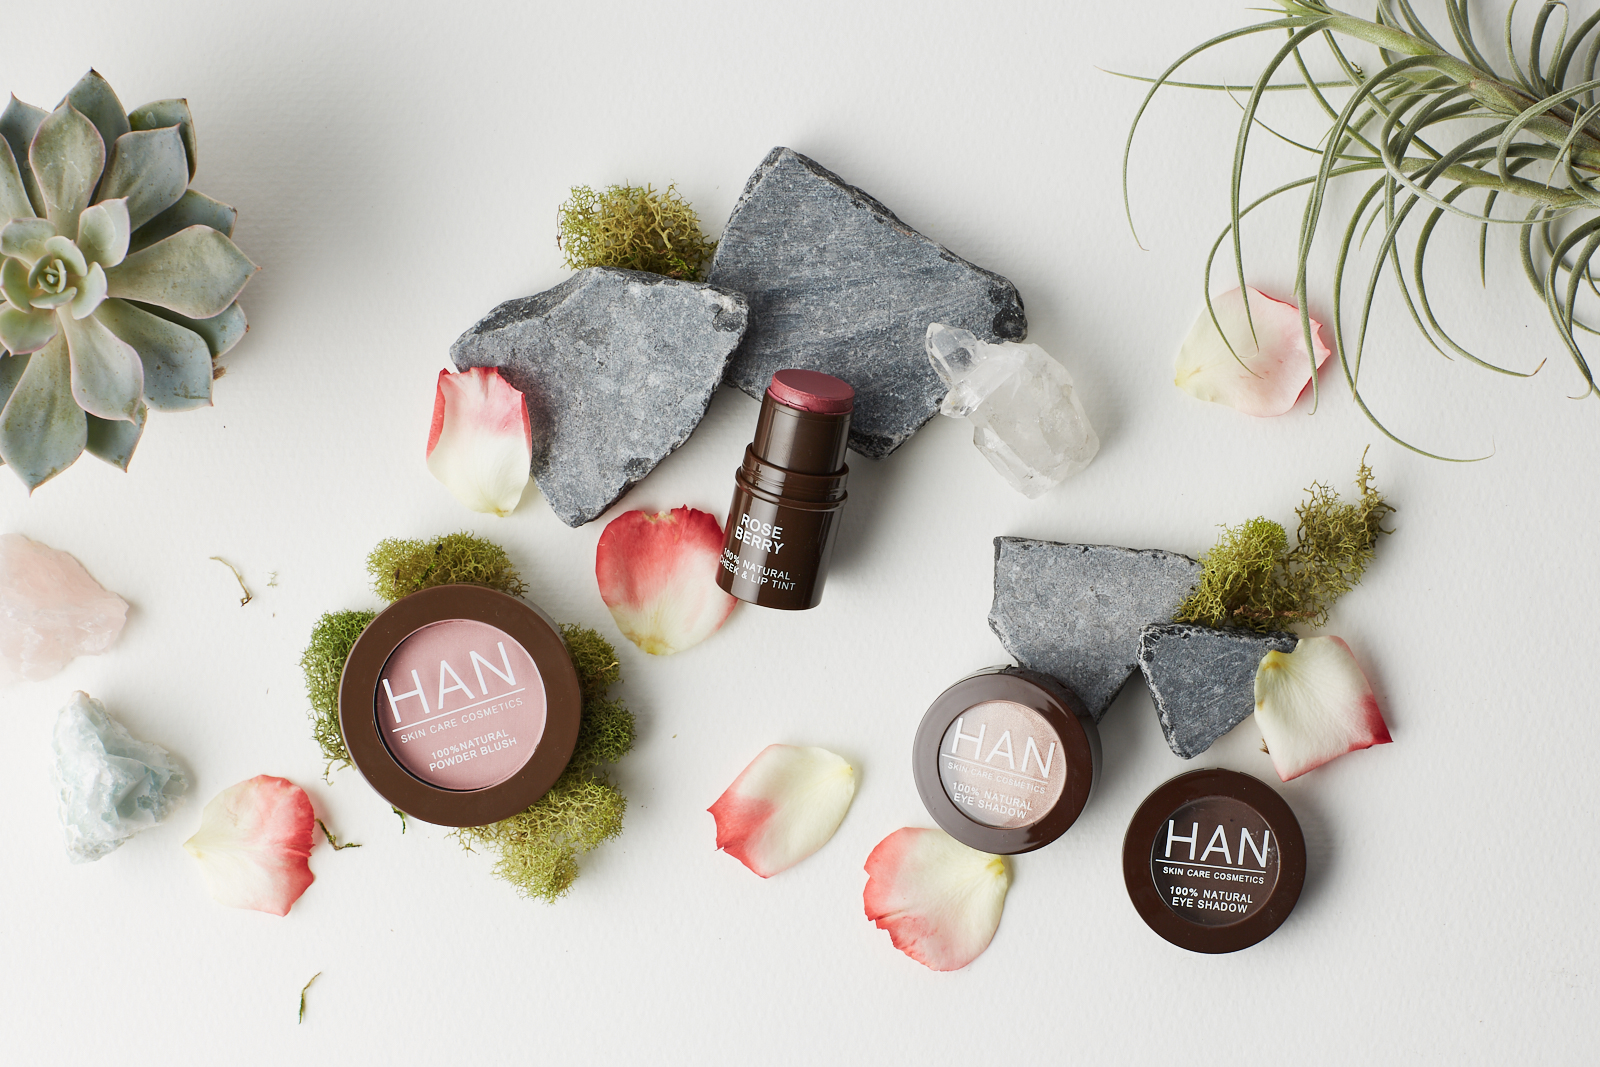 HAN Skin Care Cosmetics Collection & Review Swatches